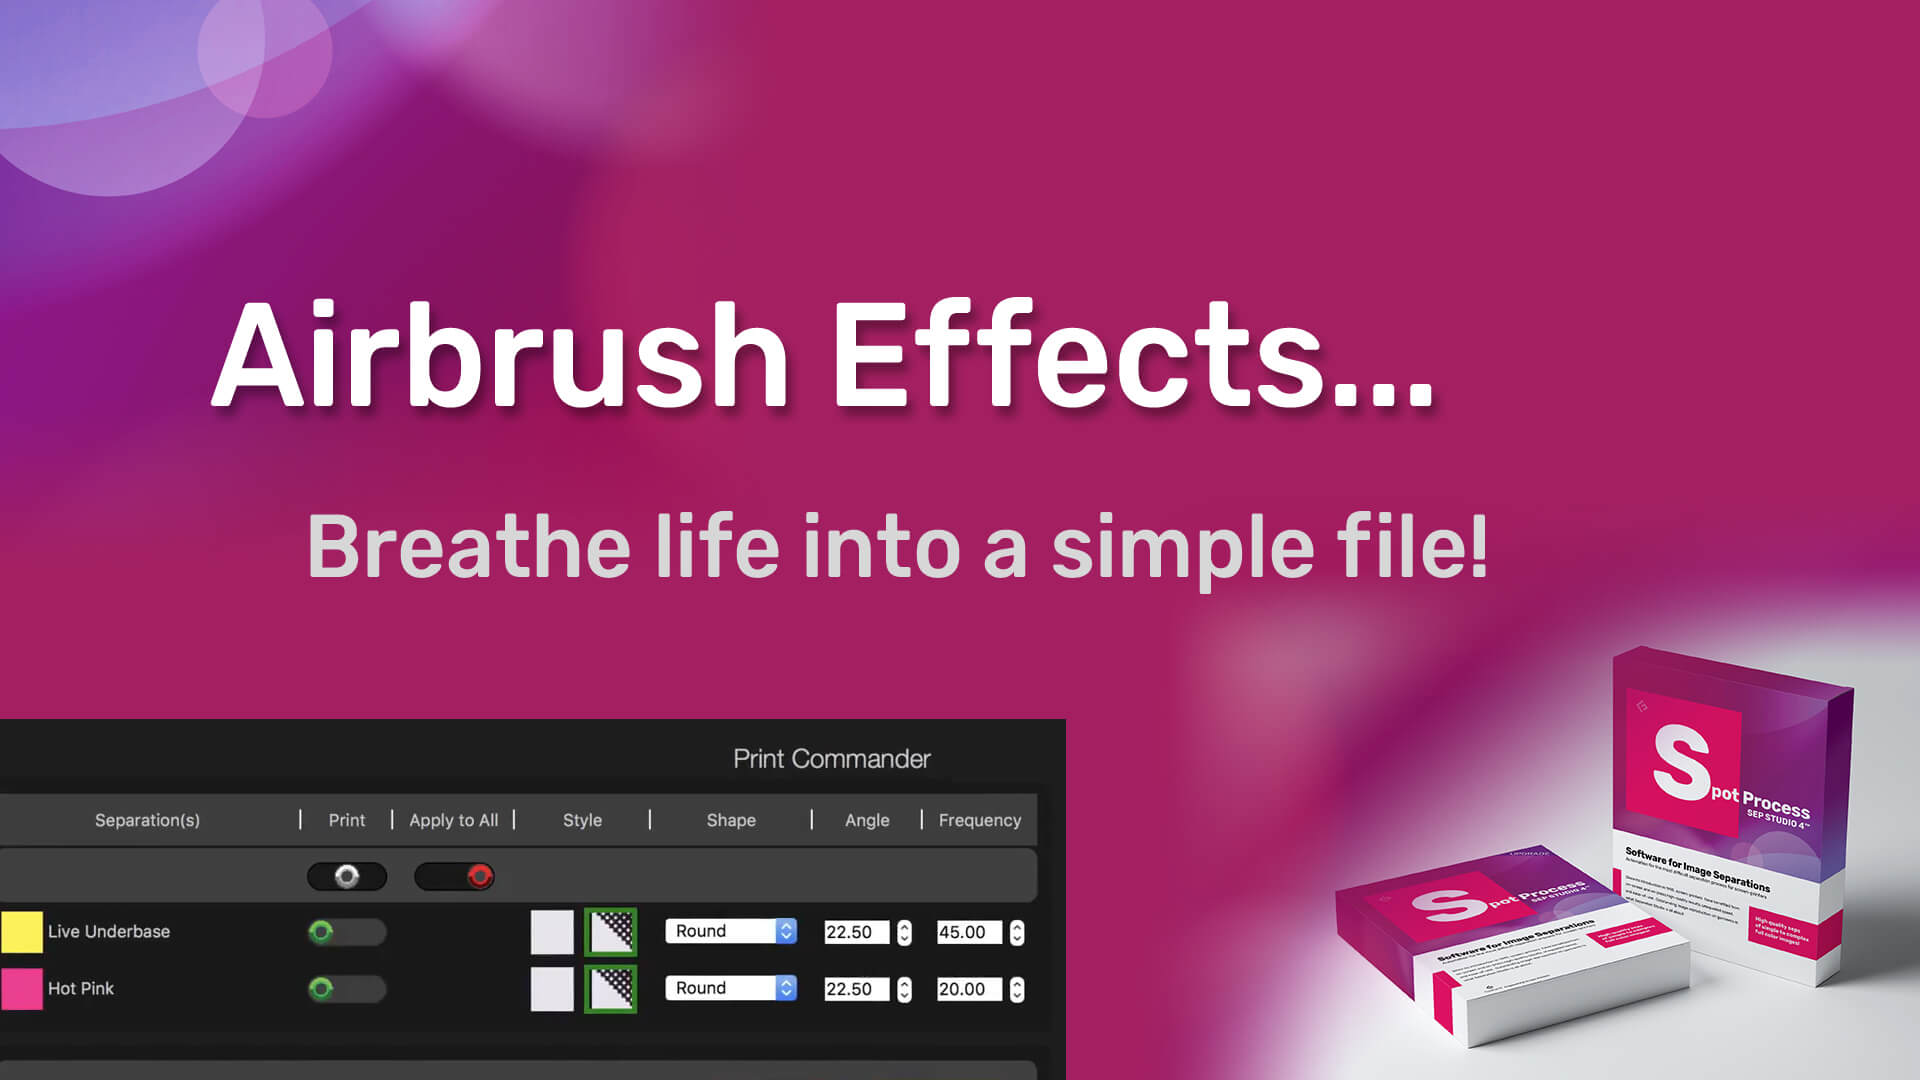 spss4-airbrush-effects-youtube-2